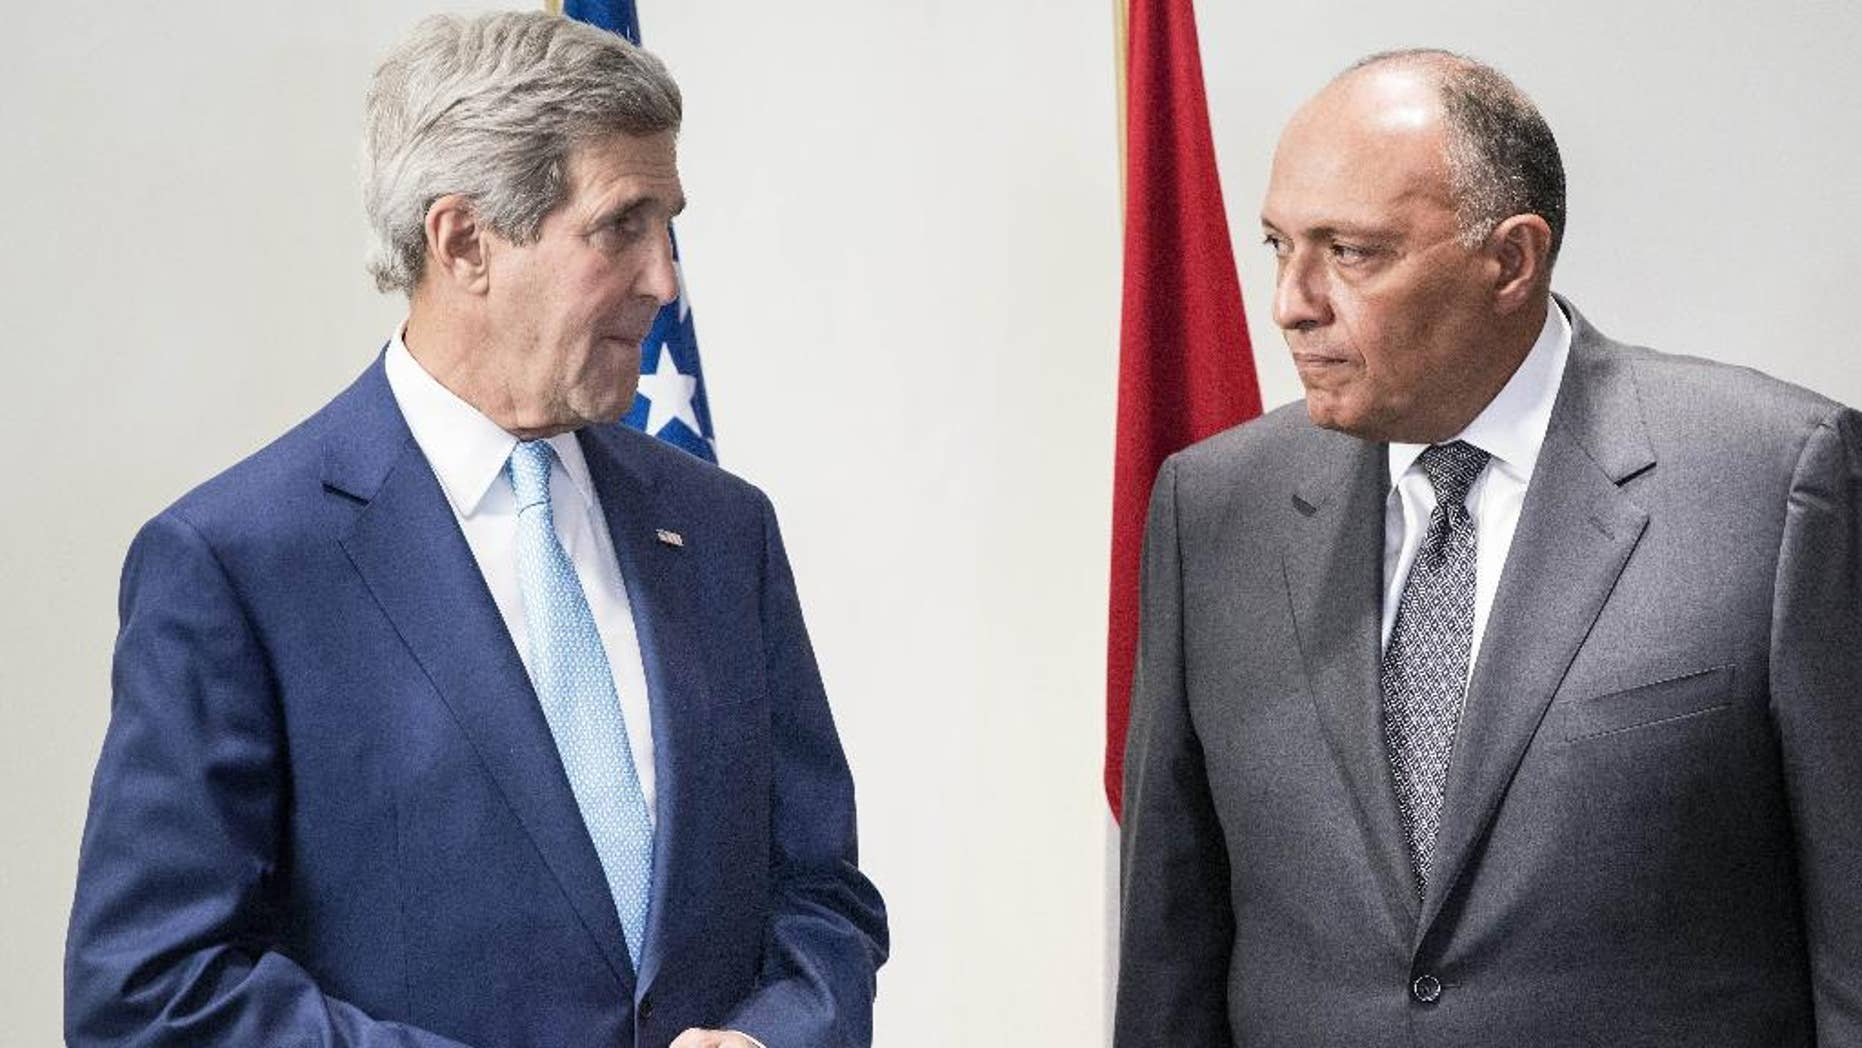 U.S. Secretary of State John Kerry, left, and Egyptian Foreign Minister Sameh Hassan Shoukry speak to journalists before a meeting at a hotel in Cairo, Egypt Sunday, June 22, 2014. Kerry arrived Sunday in the Egyptian capital to meet with Egyptian officials including President Abdel-Fattah el-Sissi in the highest-level American outreach since he took office. The United States is moving forward with attempts to thaw relations with Egypt that have cooled over concerns that the government in Cairo has conducted sham trials, imprisoned journalists and issued a violent crackdown on its political enemies. (AP Photo/Brendan Smalowski, Pool)